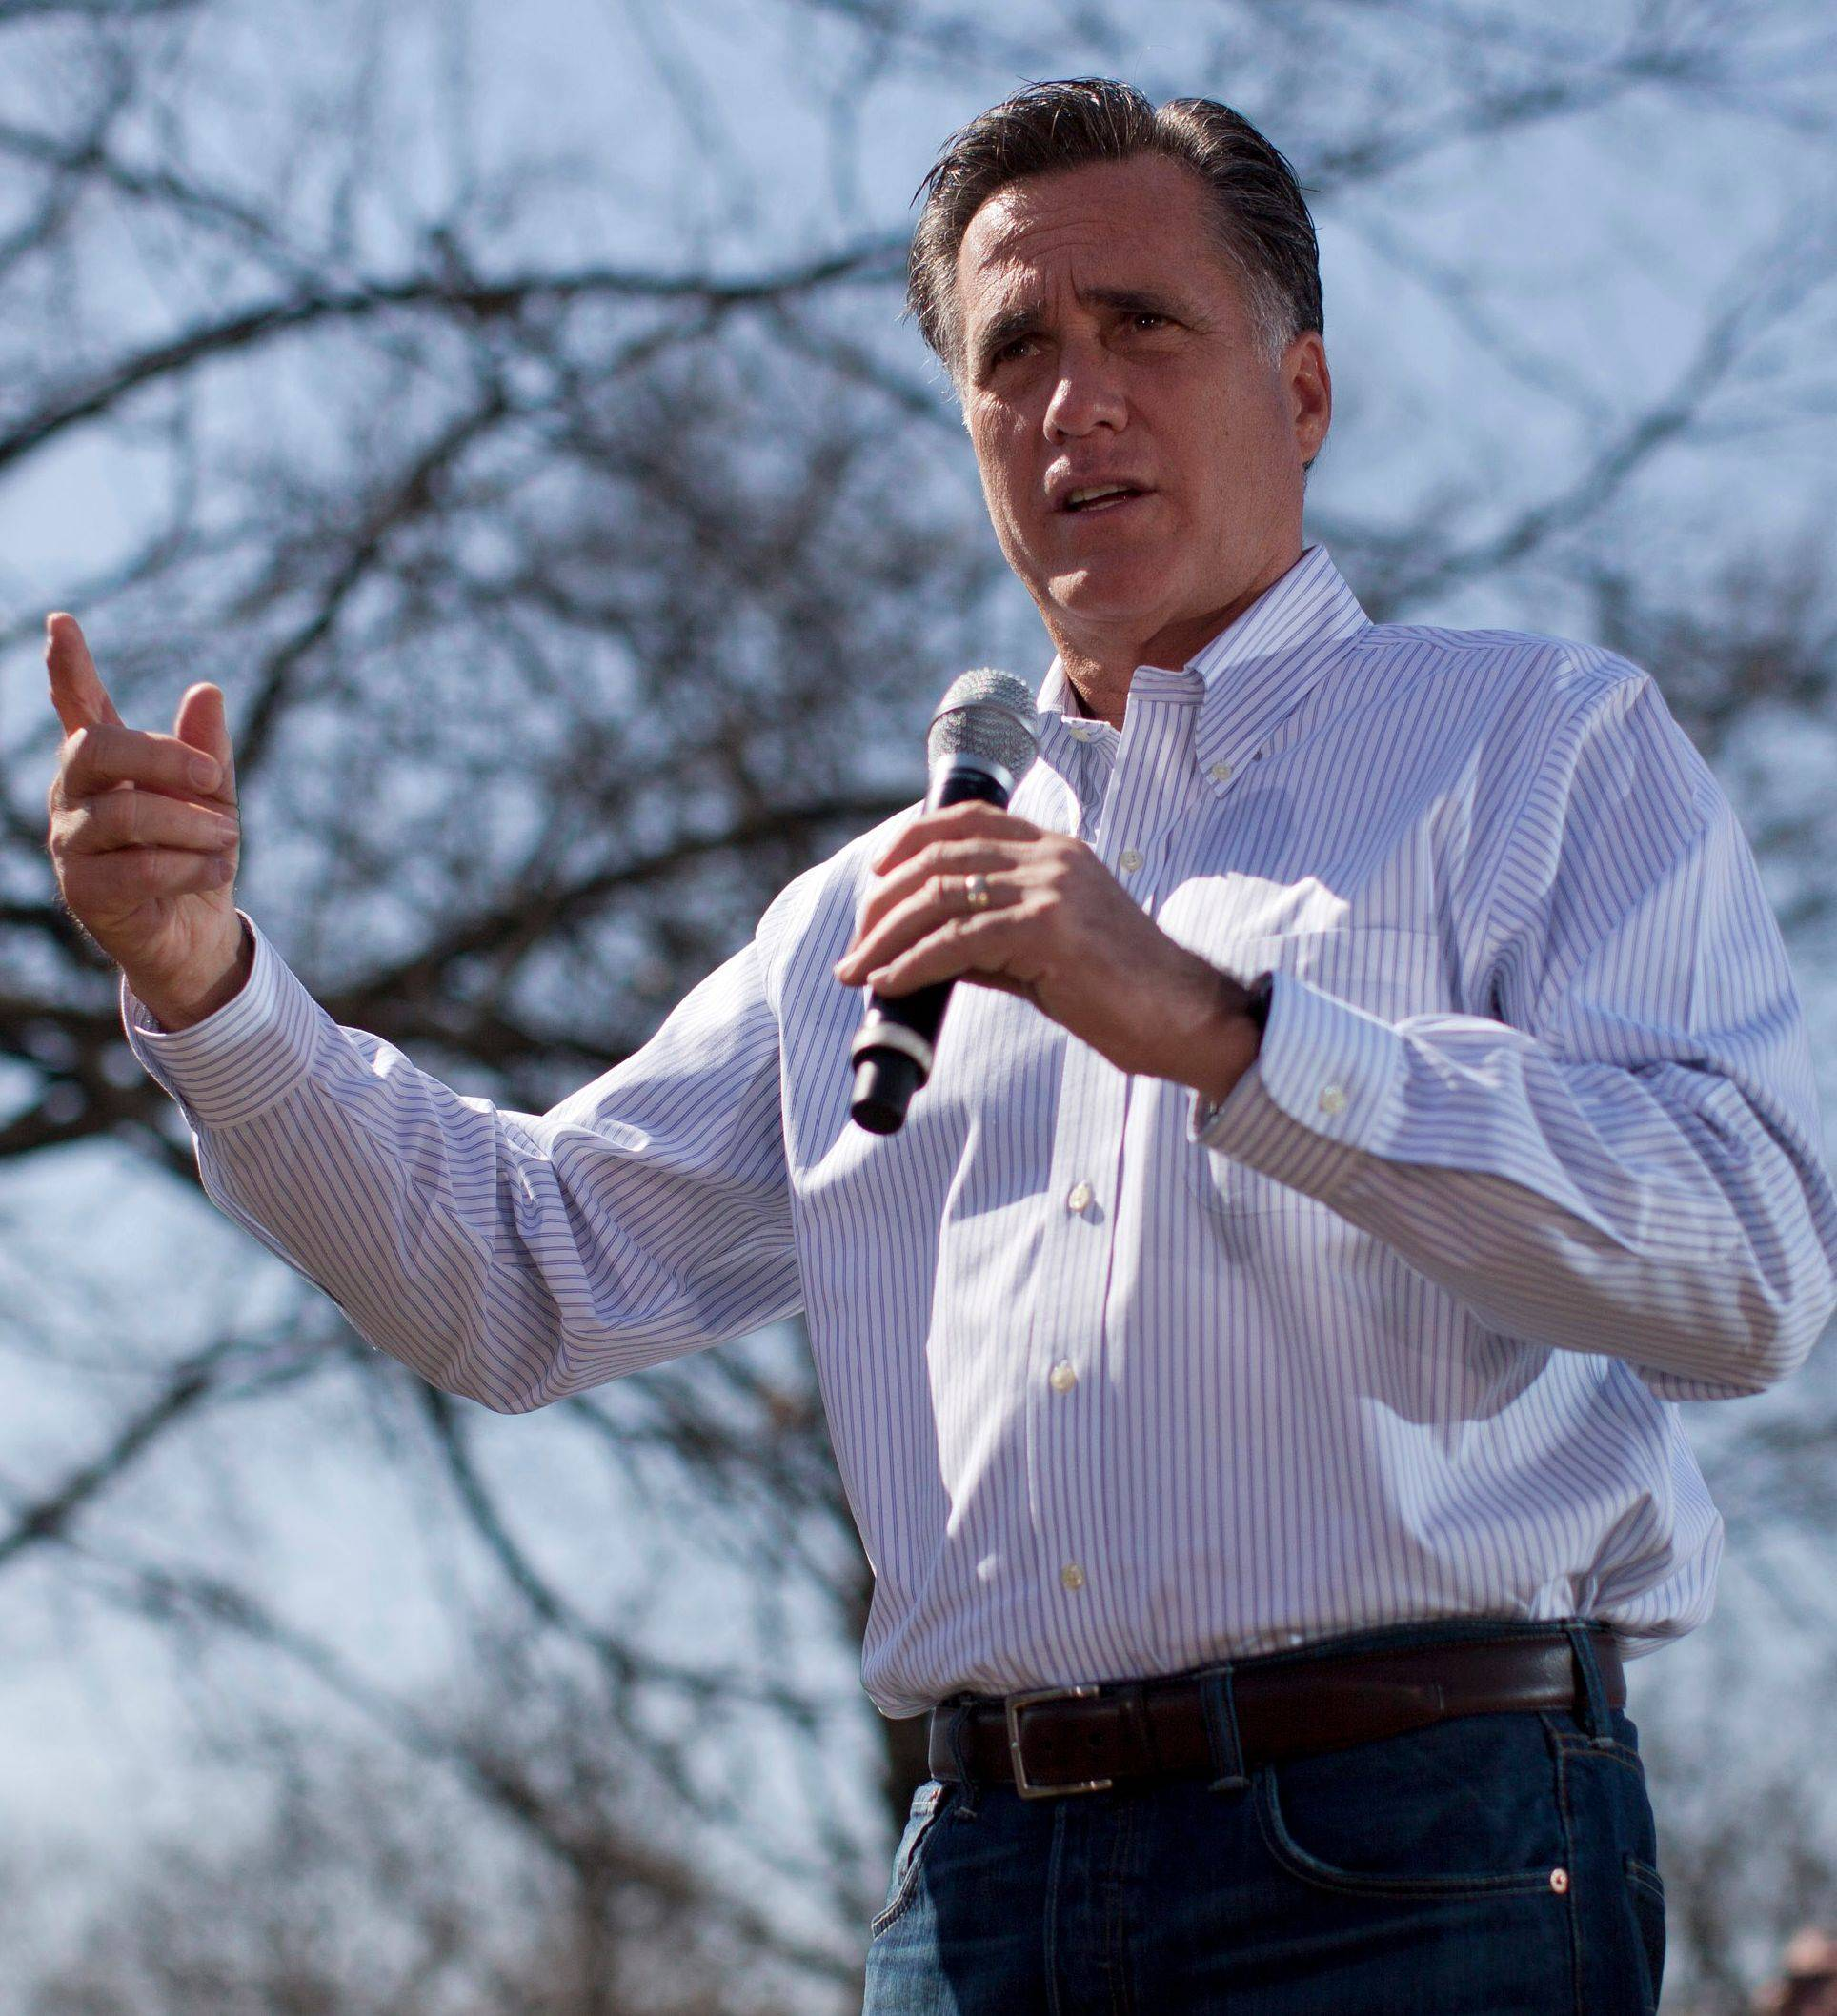 Republican presidential candidate, former Massachusetts Gov. Mitt Romney, campaigns in St. Louis.